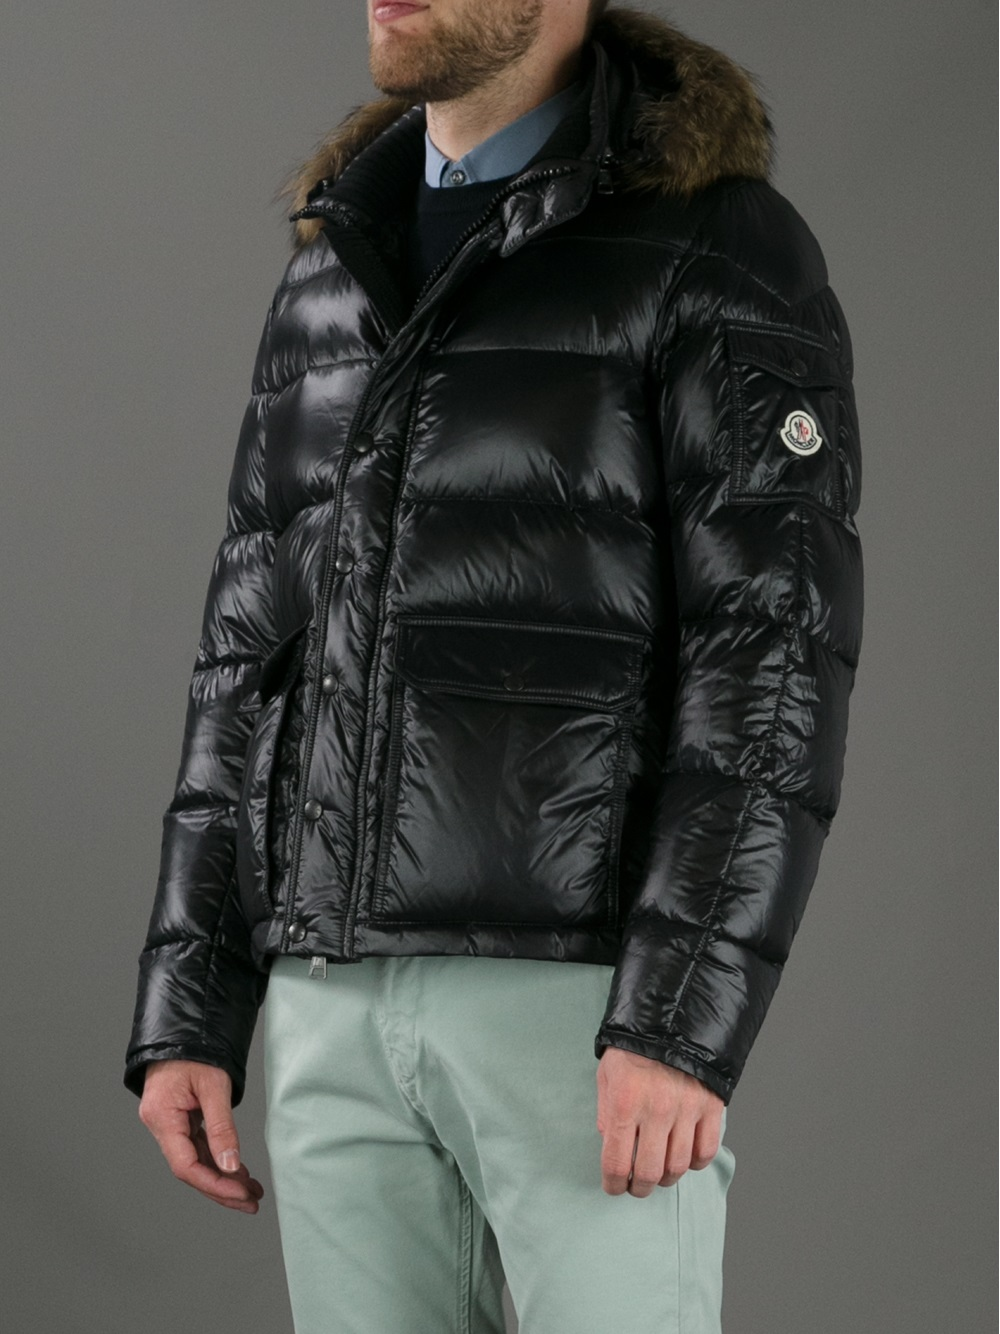 moncler jacket leather